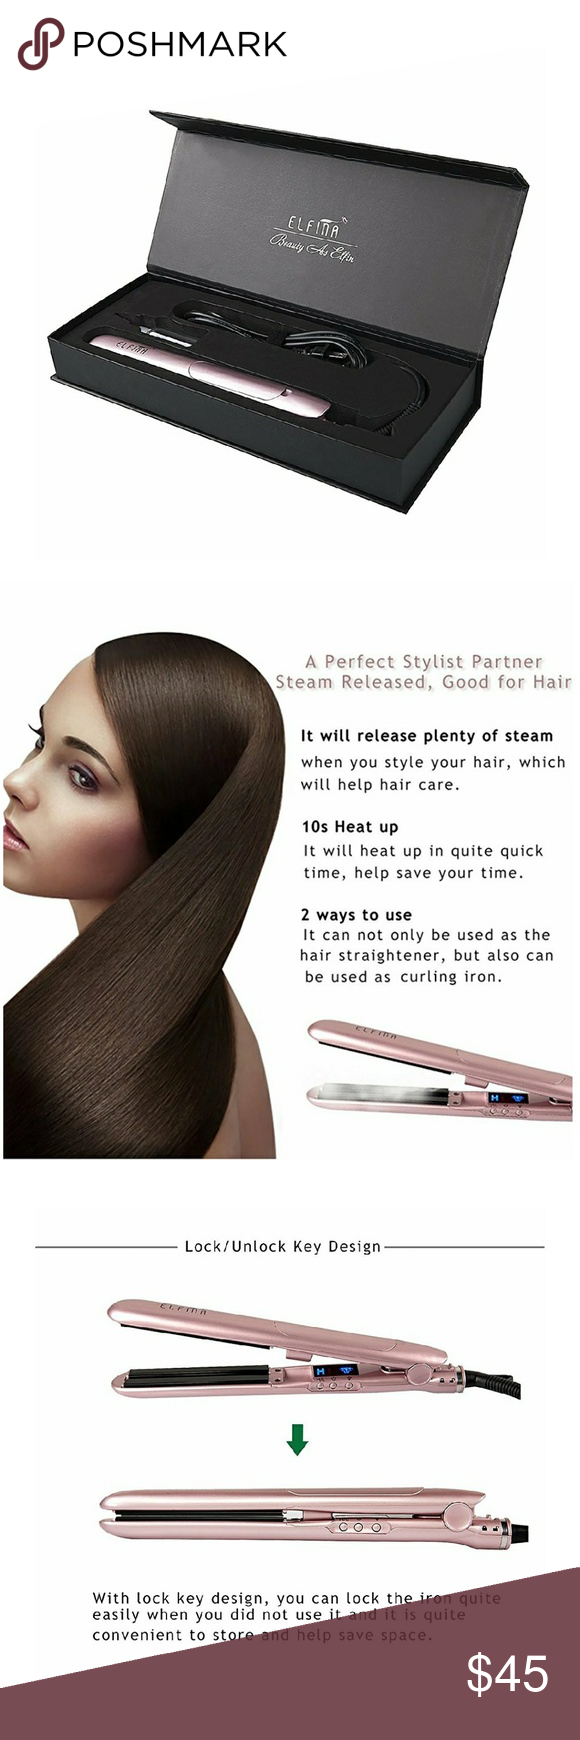 How a Straightener Can Help Save Space and Keep You Stylish This Summer How a Straightener Can Help Save Space and Keep You Stylish This Summer new images